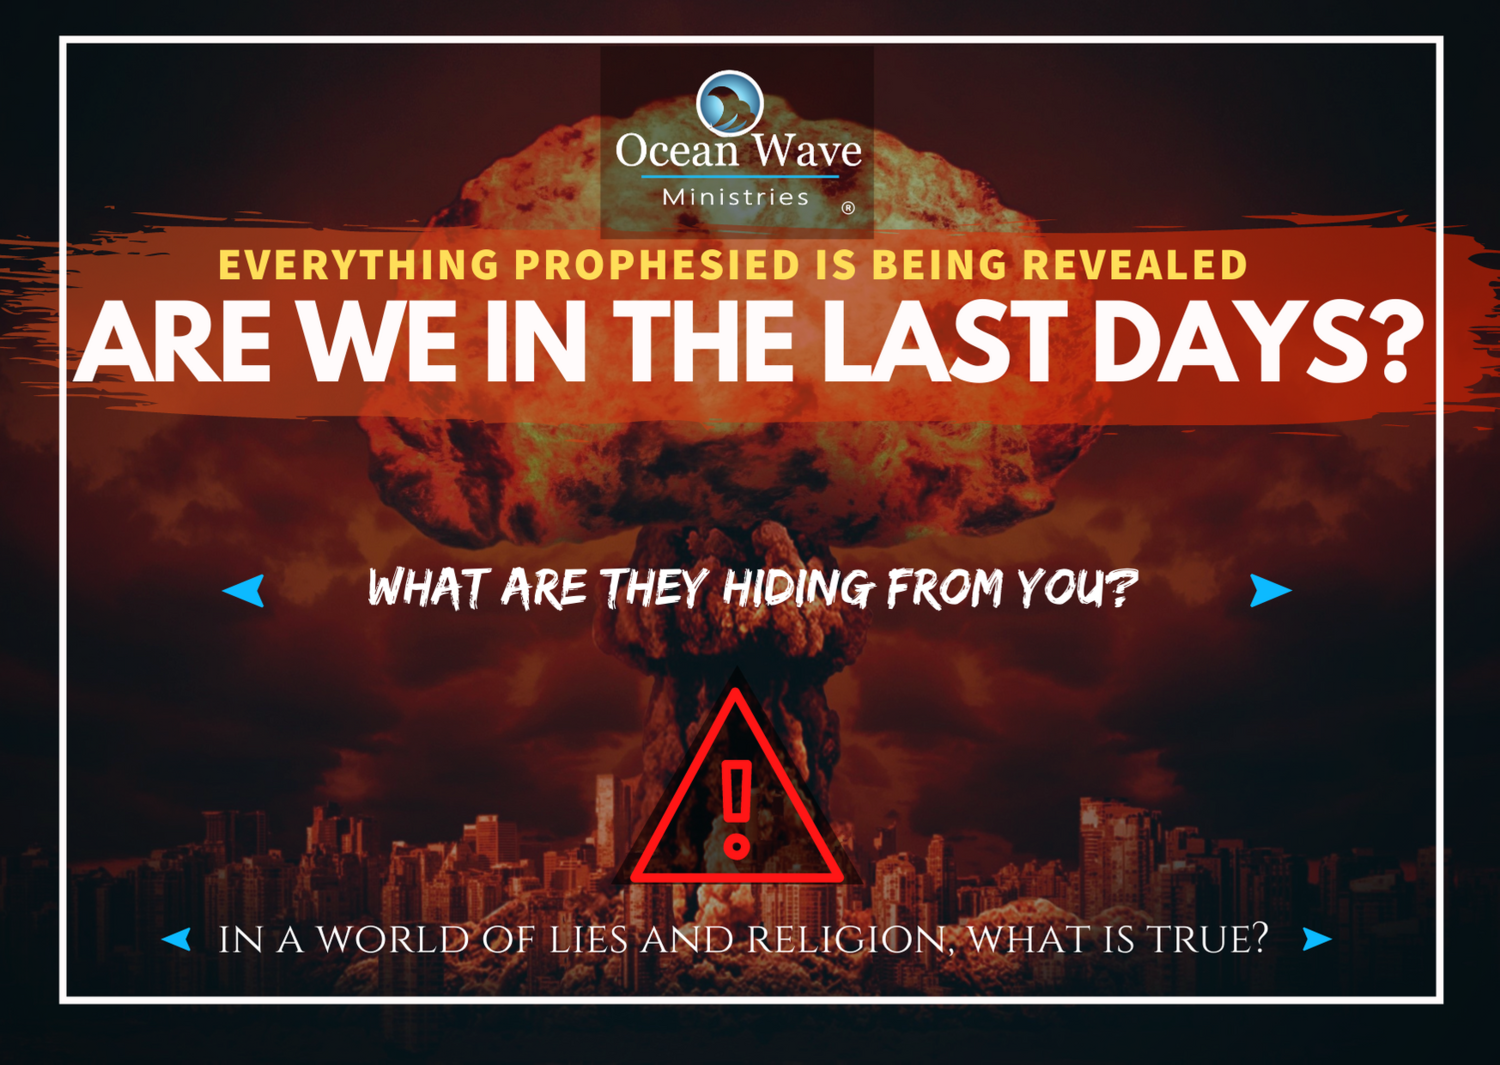 *NEW* End Times Tracts